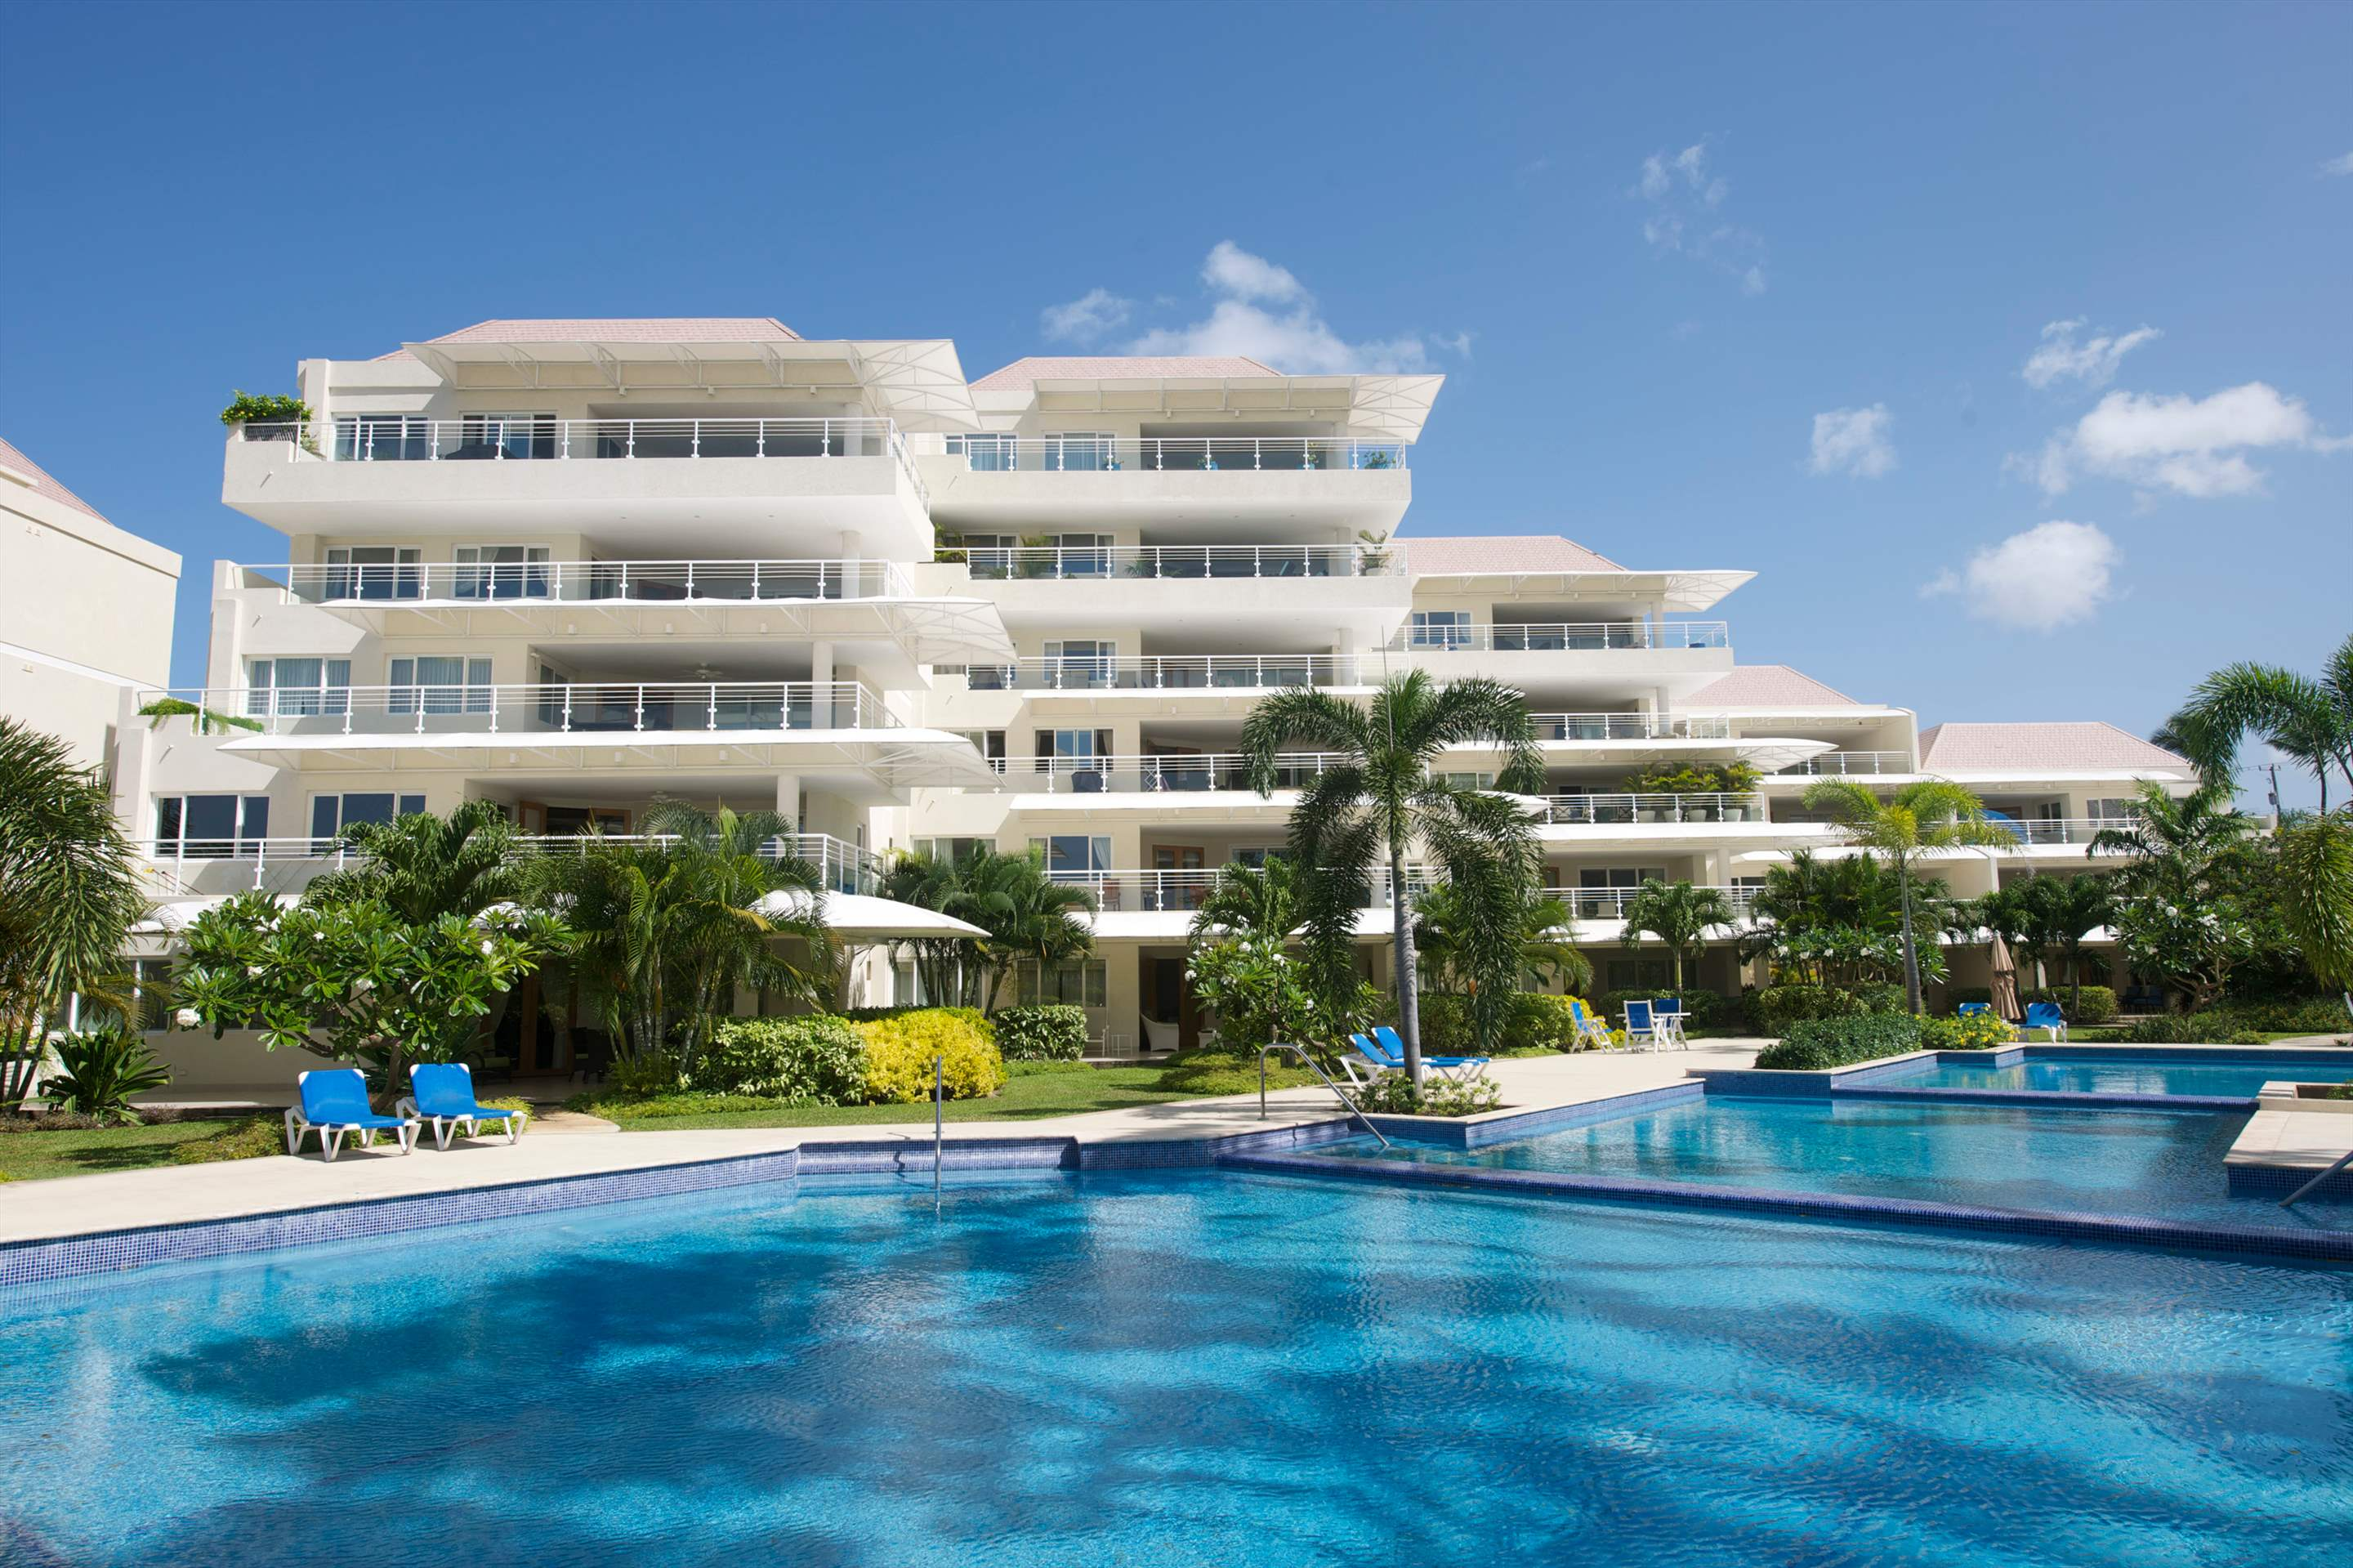 Palm Beach 110, 3 bedroom apartment in St. Lawrence Gap & South Coast, Barbados Photo #2